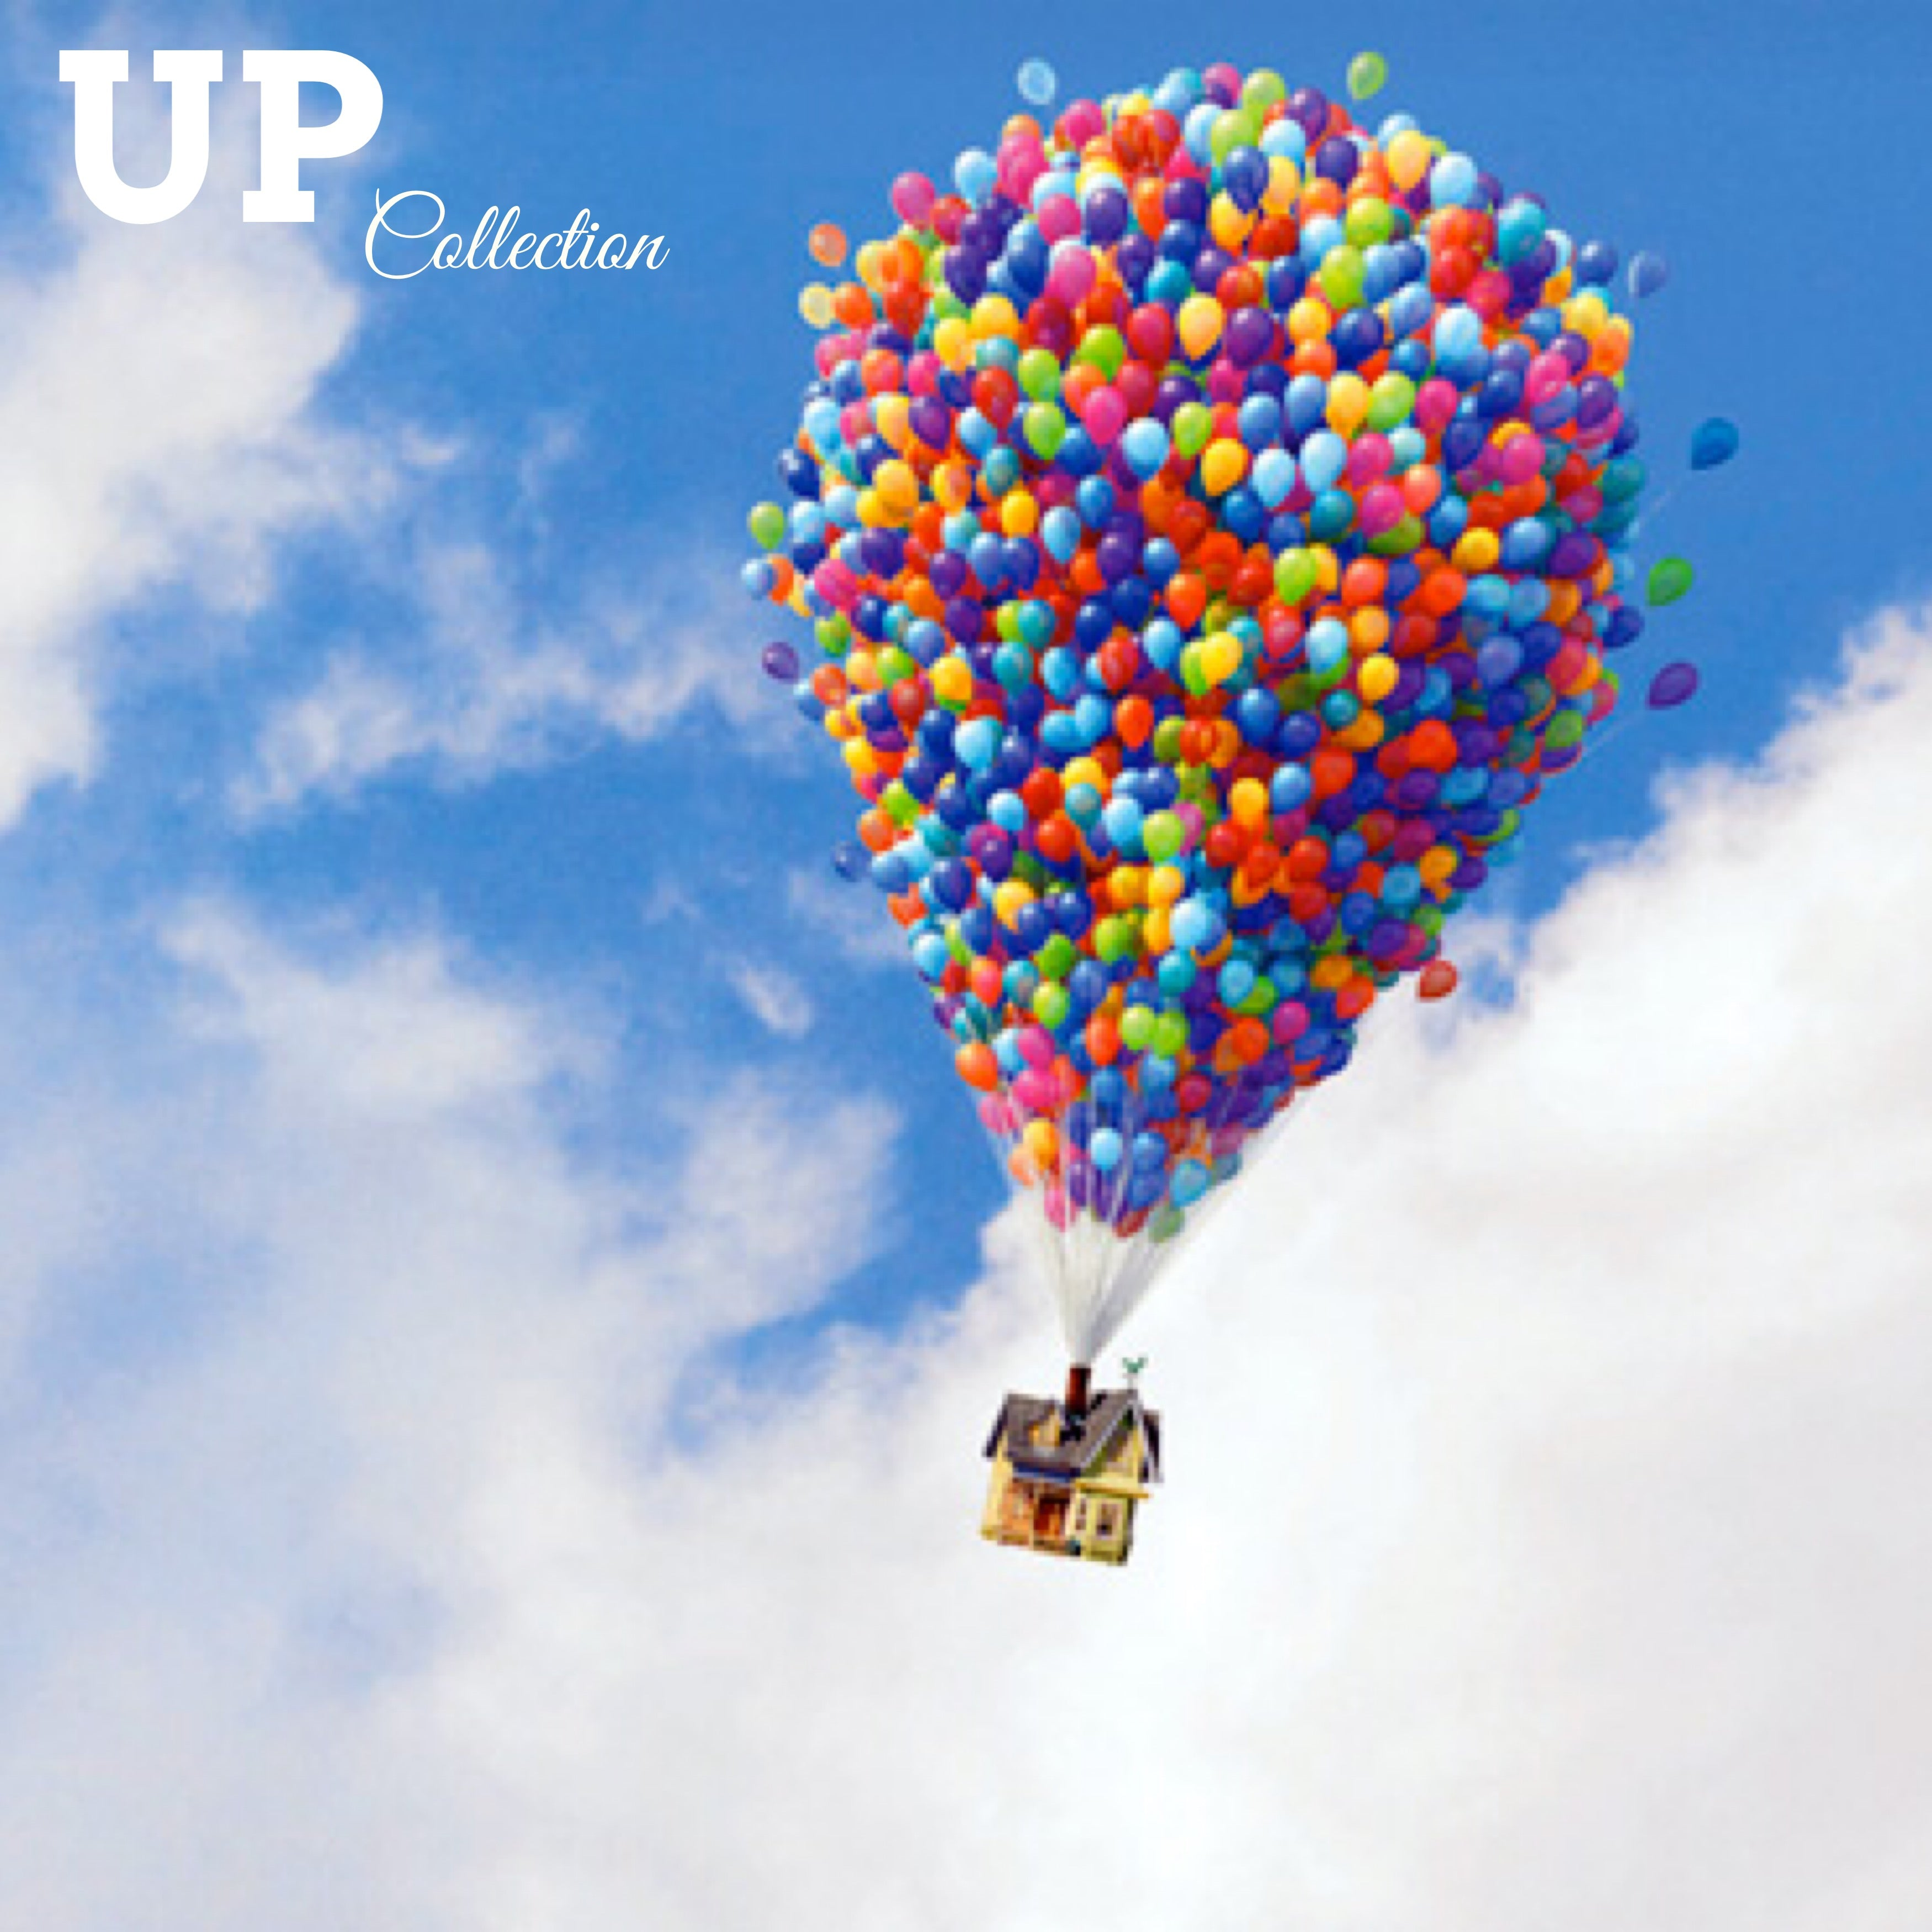 UP Collection